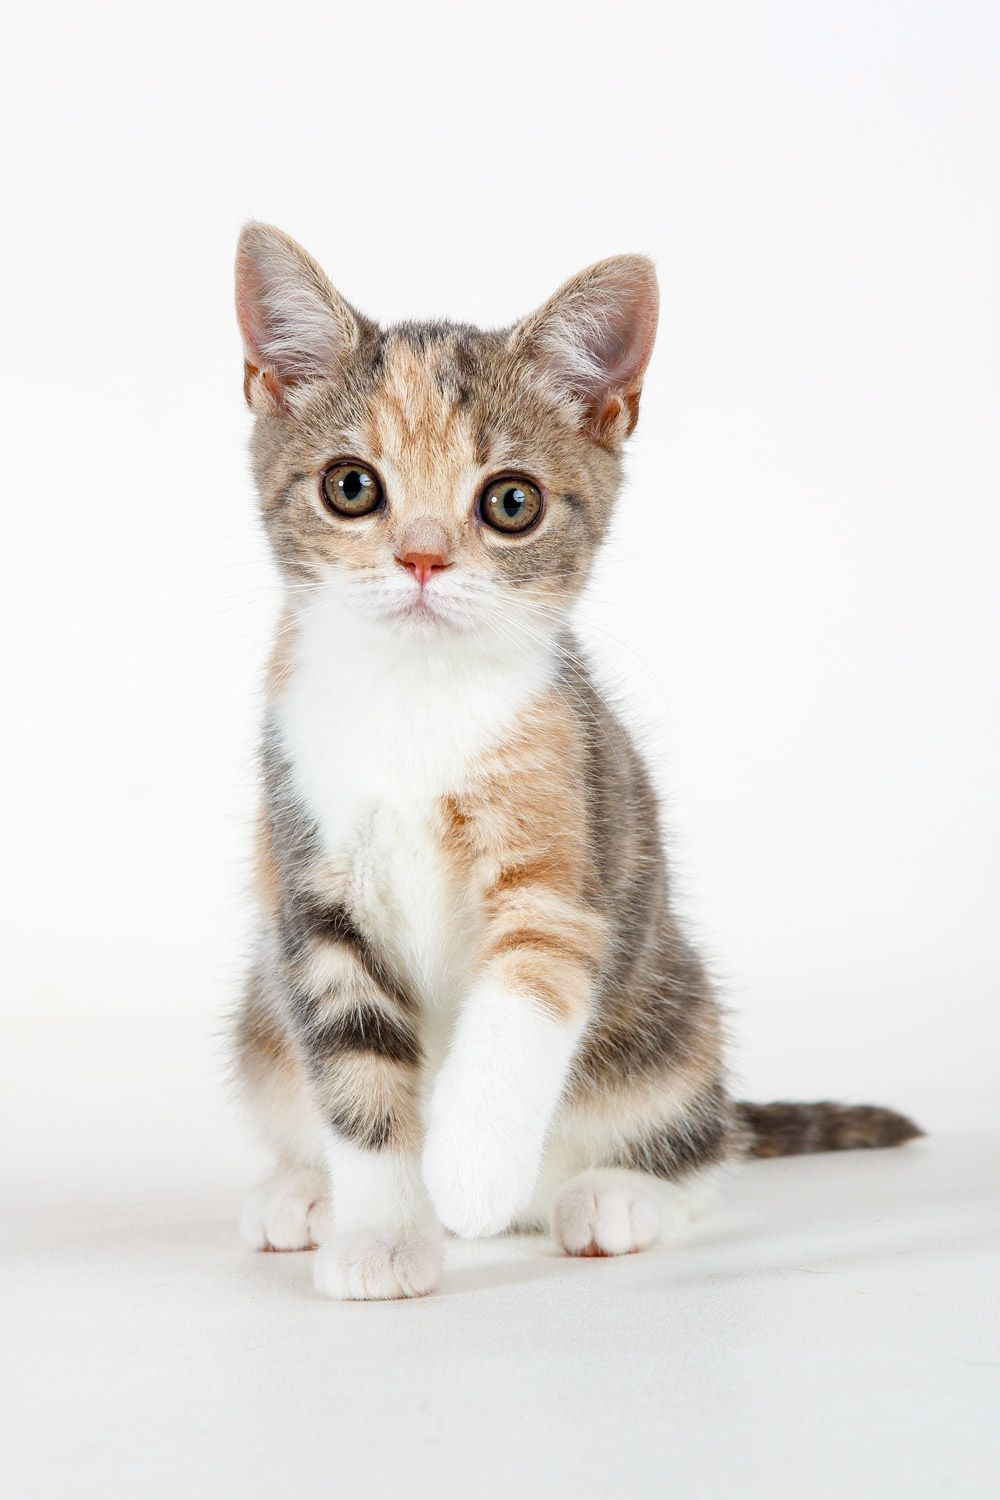 Daily Dose April 29 2017 Calico Kid American Shorthair Kitten 2017 C Barbara O Brie American Shorthair Kitten American Shorthair American Shorthair Cat